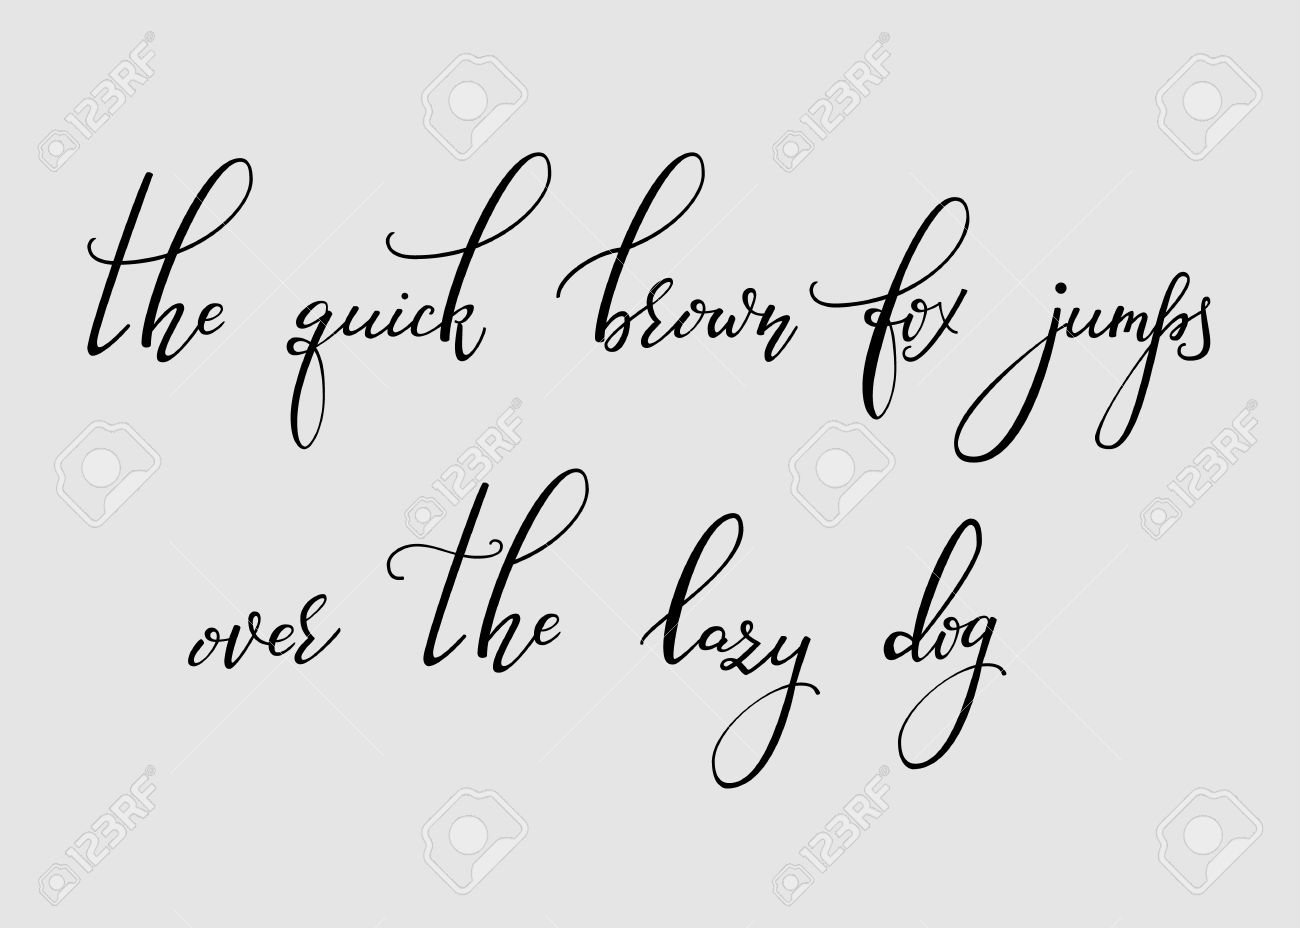 Handwritten Pointed Pen Ink Style Modern Calligraphy Cursive Font Alphabet Cute Letters